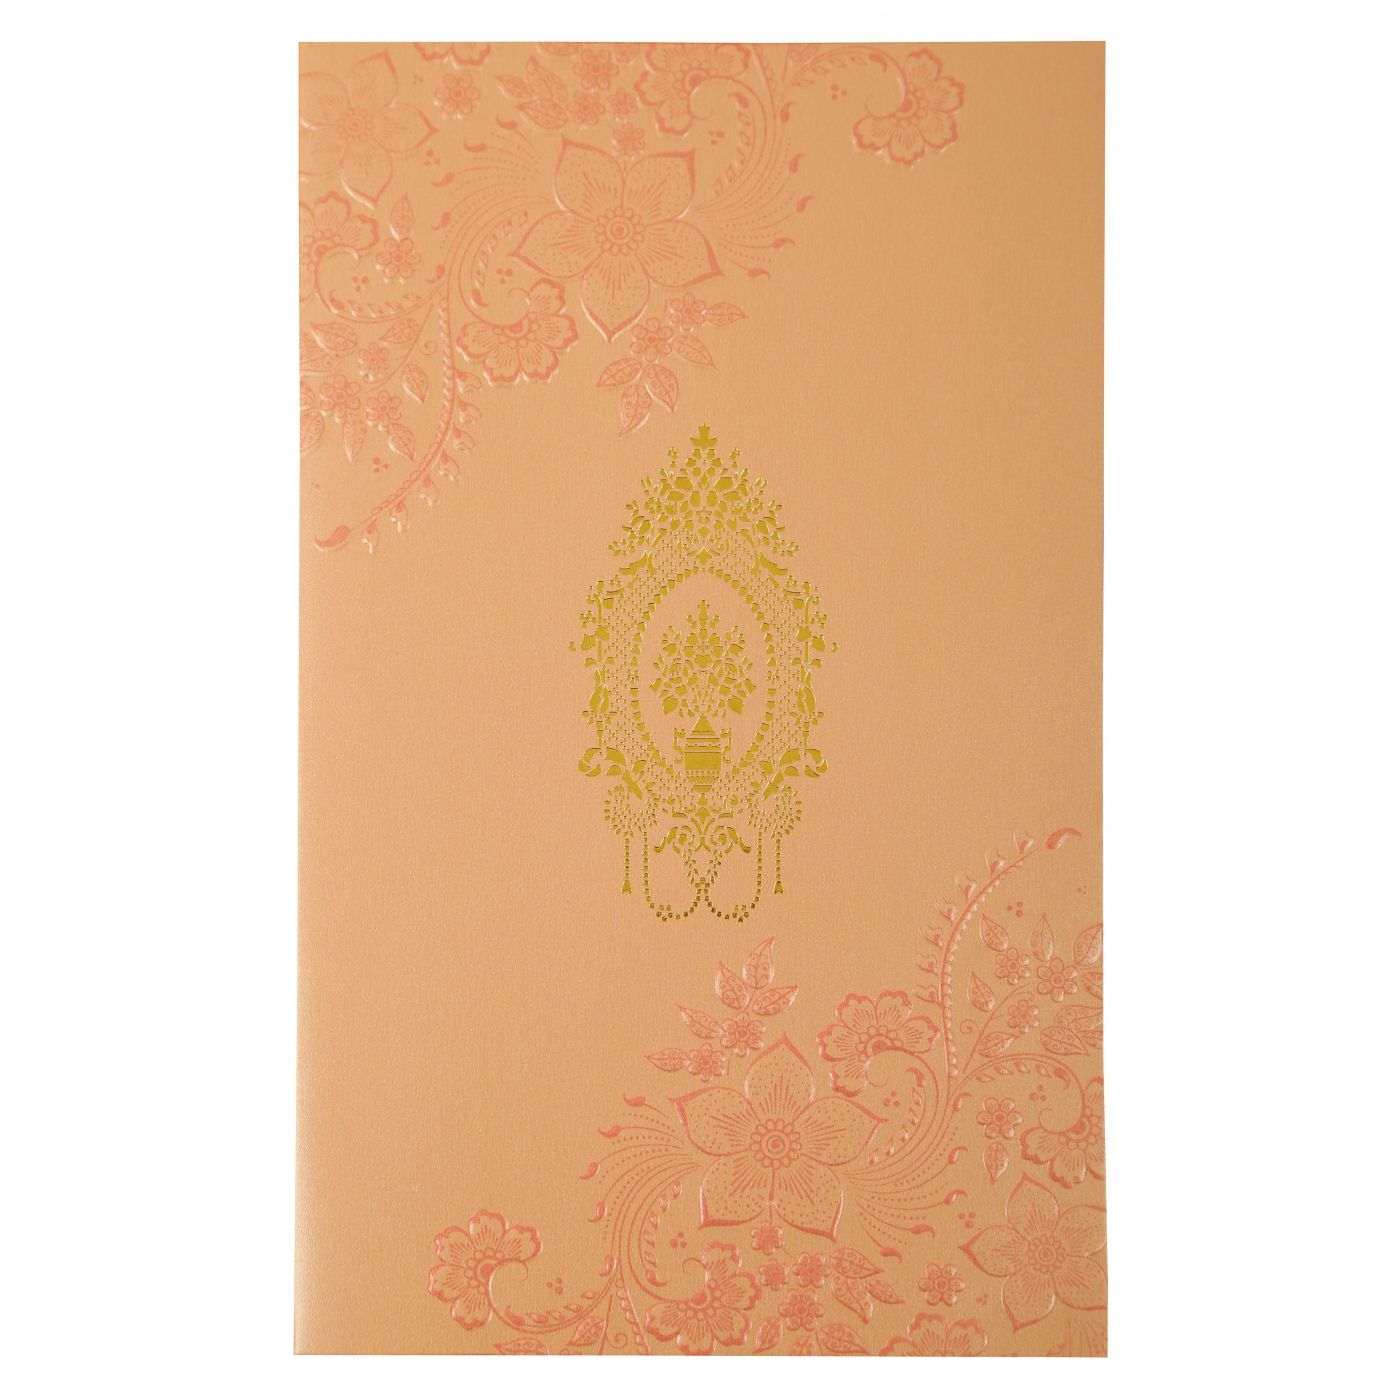 BABY PINK SHIMMERY FLORAL THEMED - FOIL STAMPED WEDDING INVITATION : CIN-1921 - IndianWeddingCards